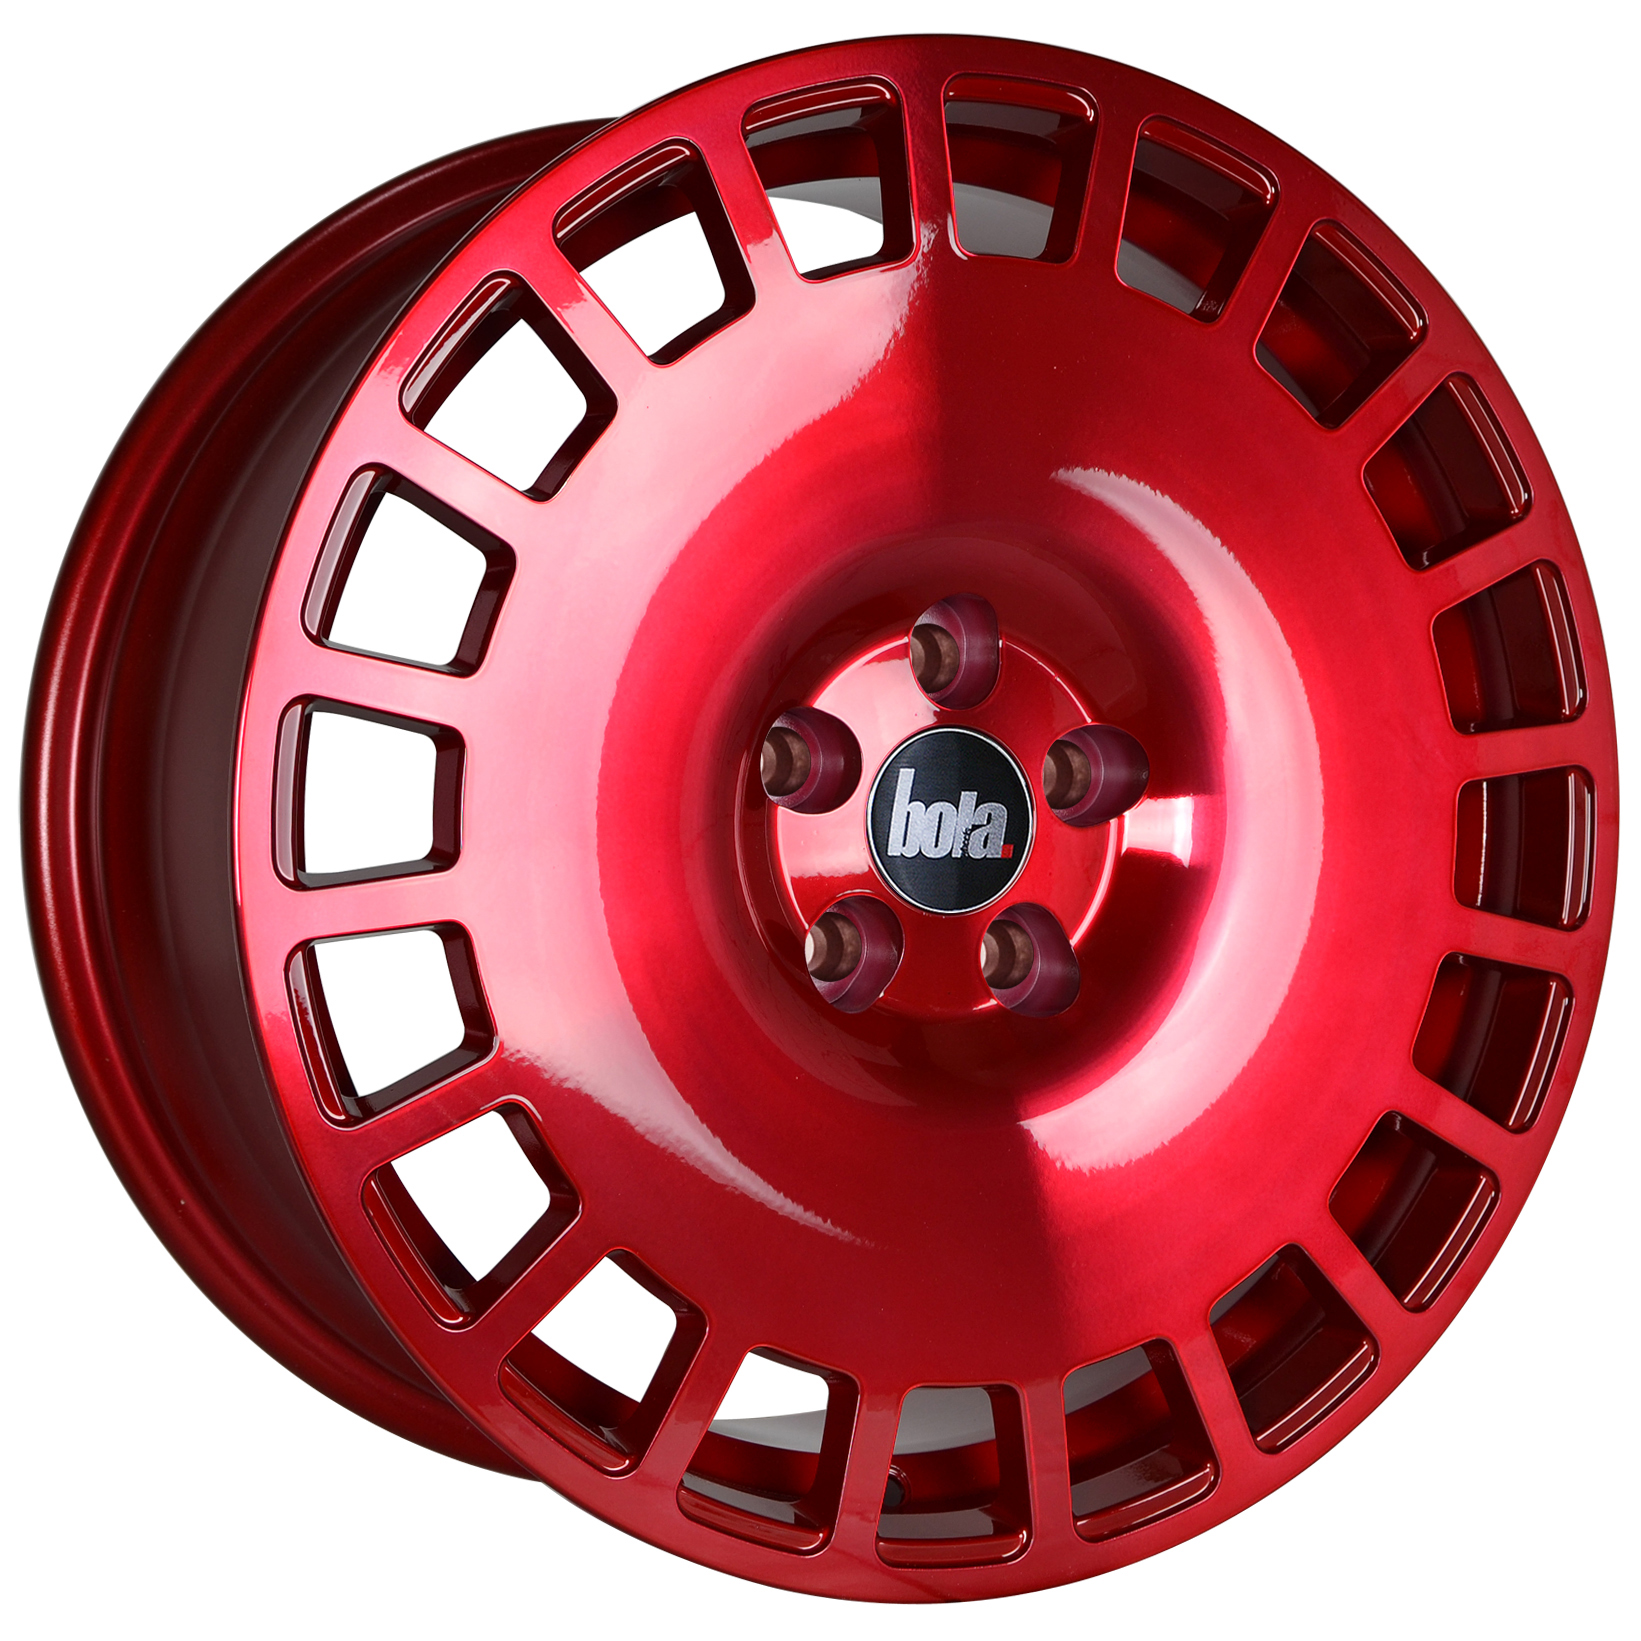 Bola B12 Alloy Wheels